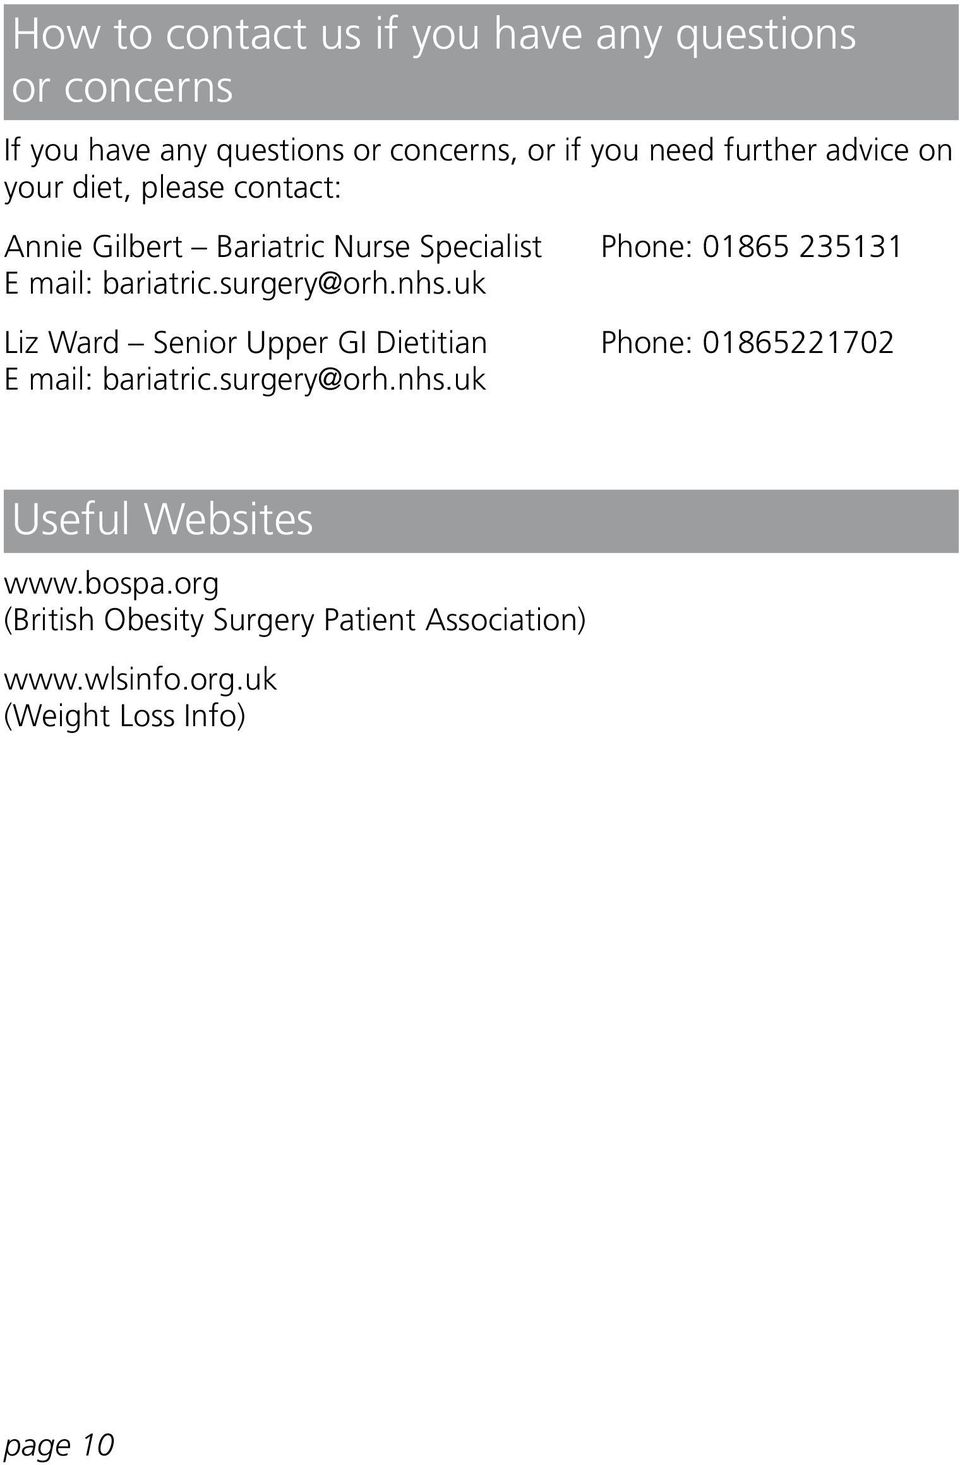 bariatric.surgery@orh.nhs.uk Liz Ward Senior Upper GI Dietitian Phone: 01865221702 E mail: bariatric.surgery@orh.nhs.uk Useful Websites www.